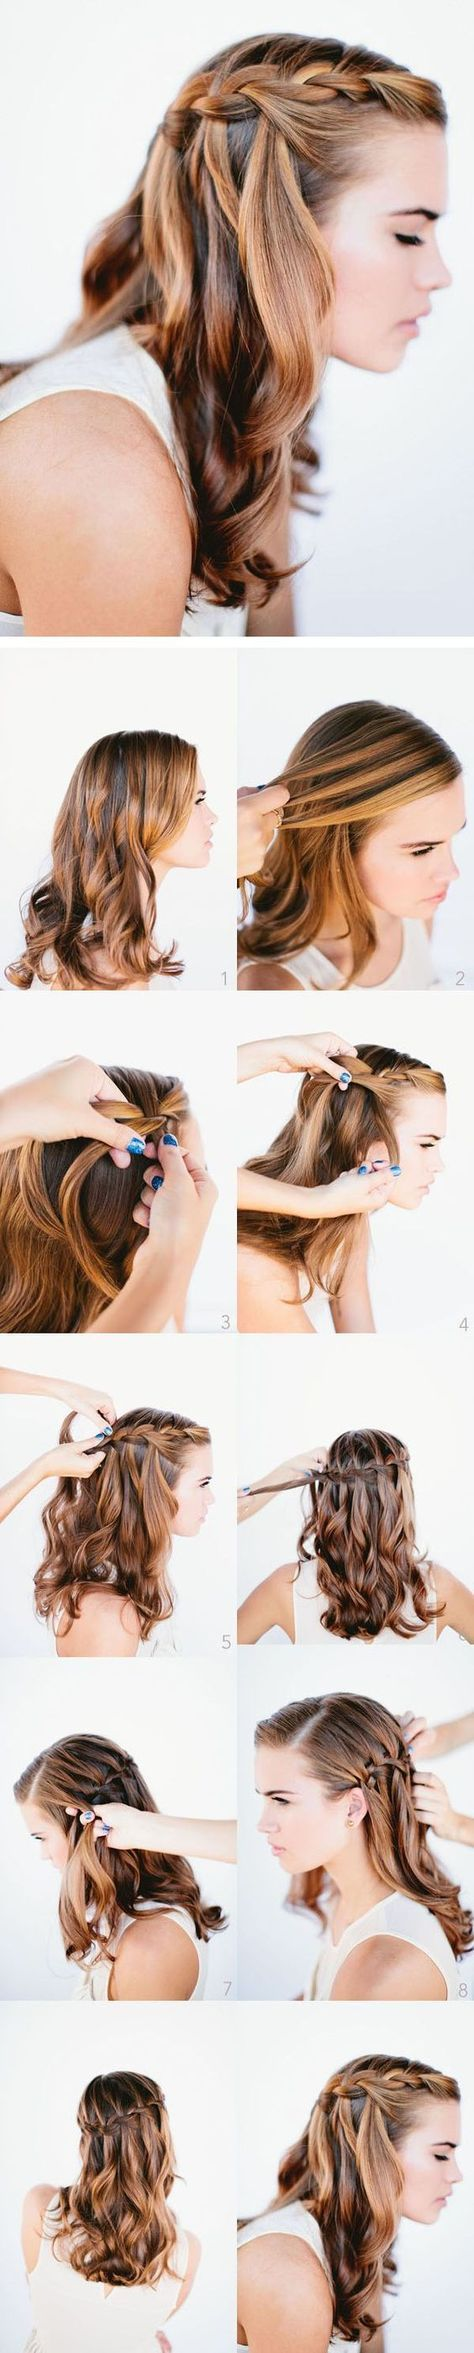 Follow this step by step guide to the perfect waterfall braid!